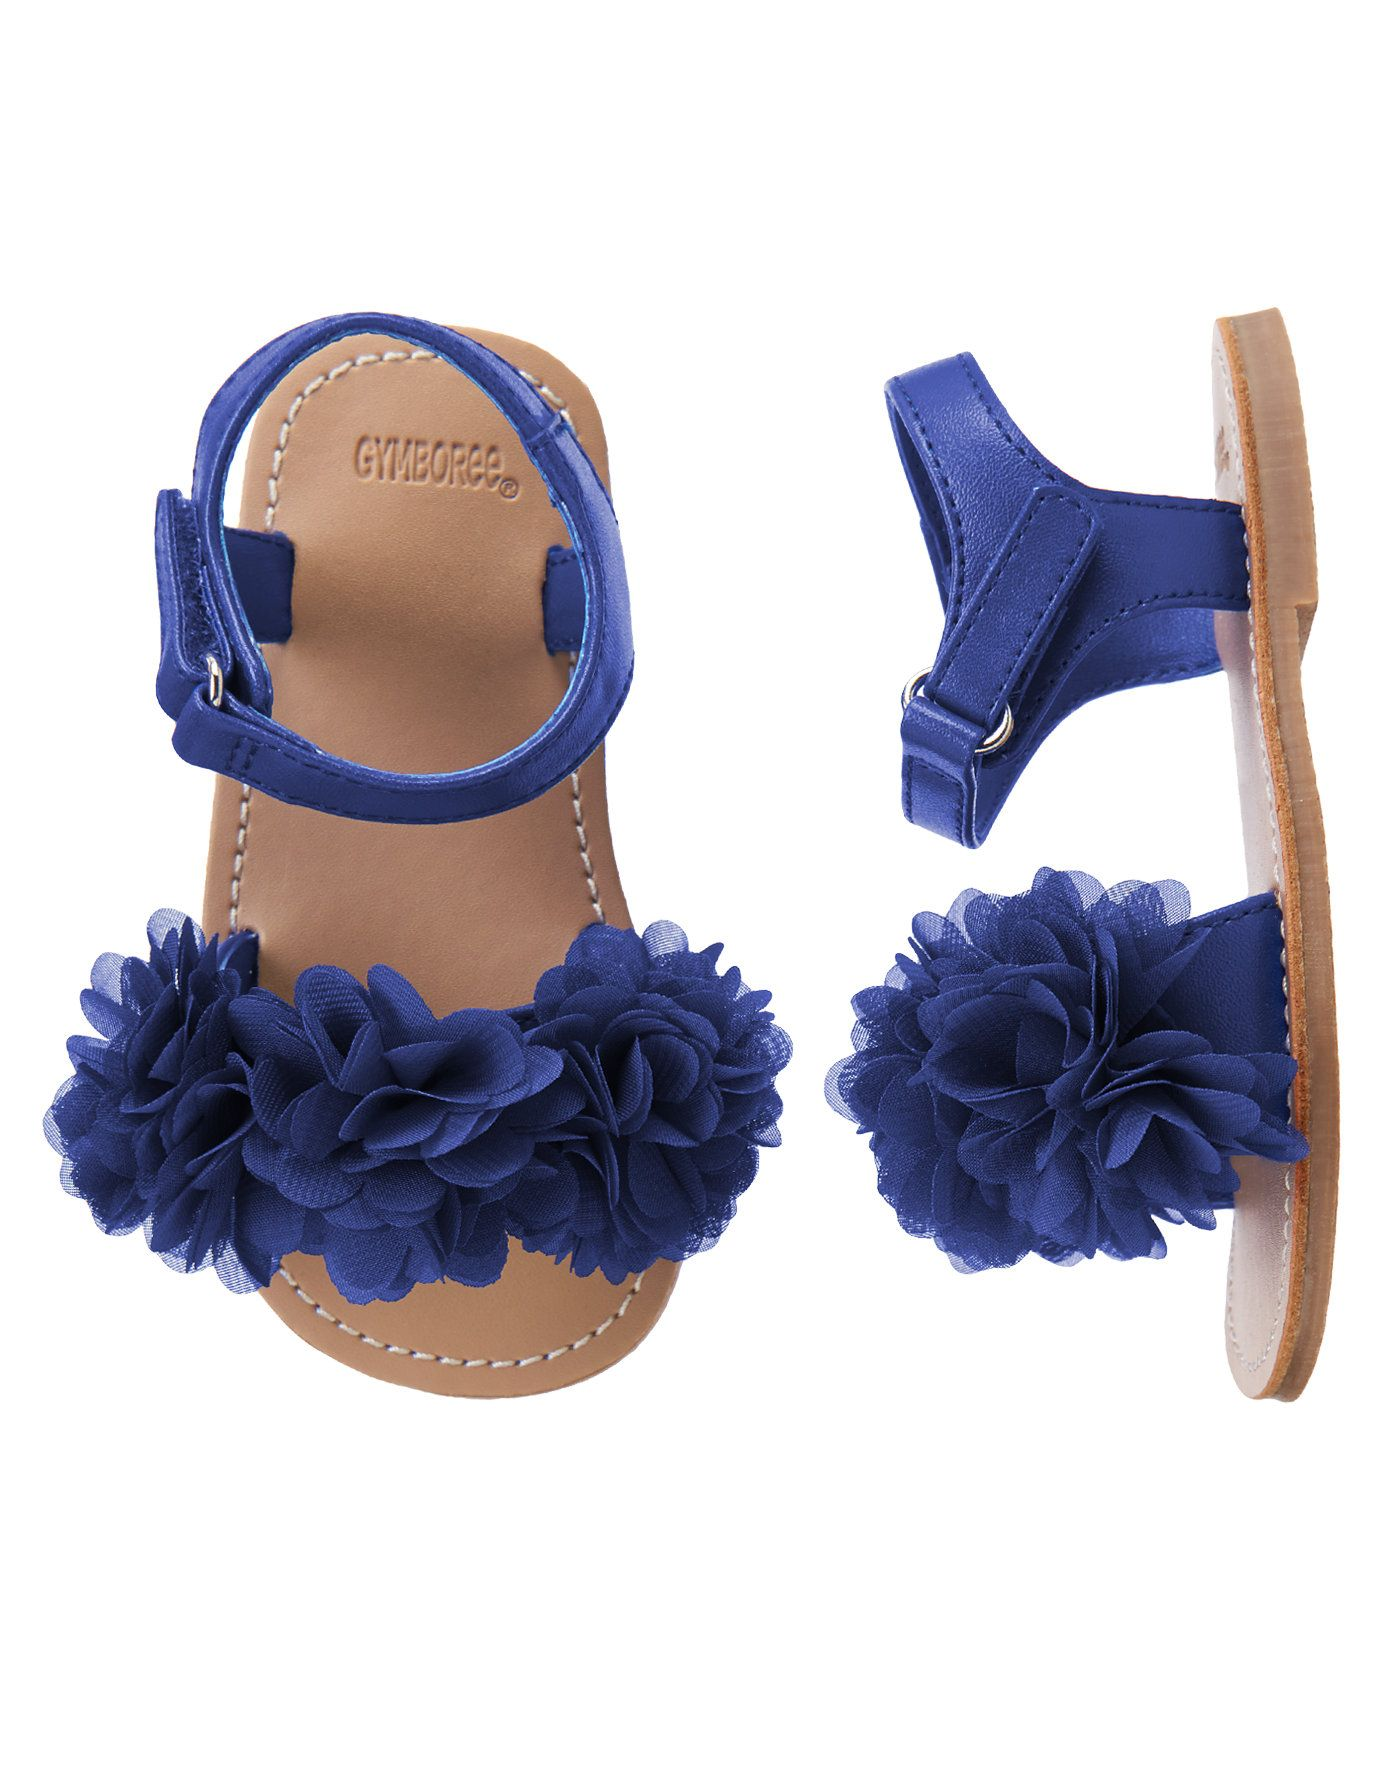 Flower Sandals at Gymboree. Flower Sandals at Gymboree Little Girl Fashion 39707aa91f65